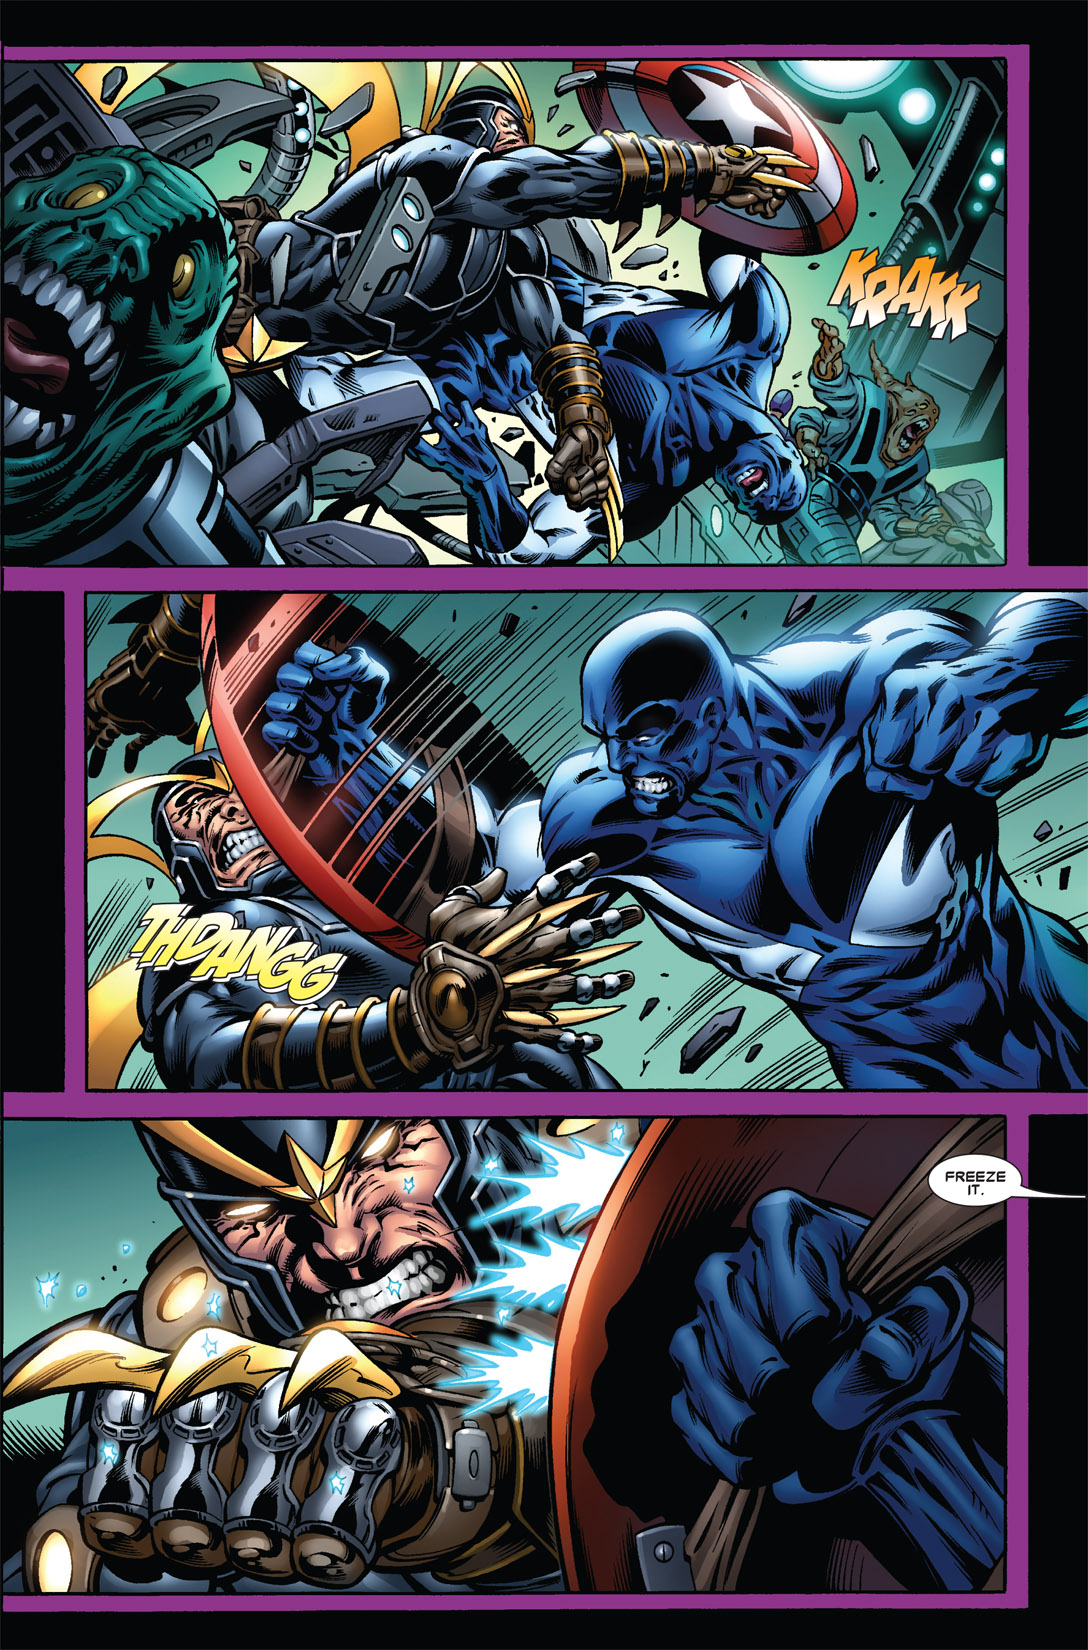 Paul Pelletier delivers strong action scenes throughout.